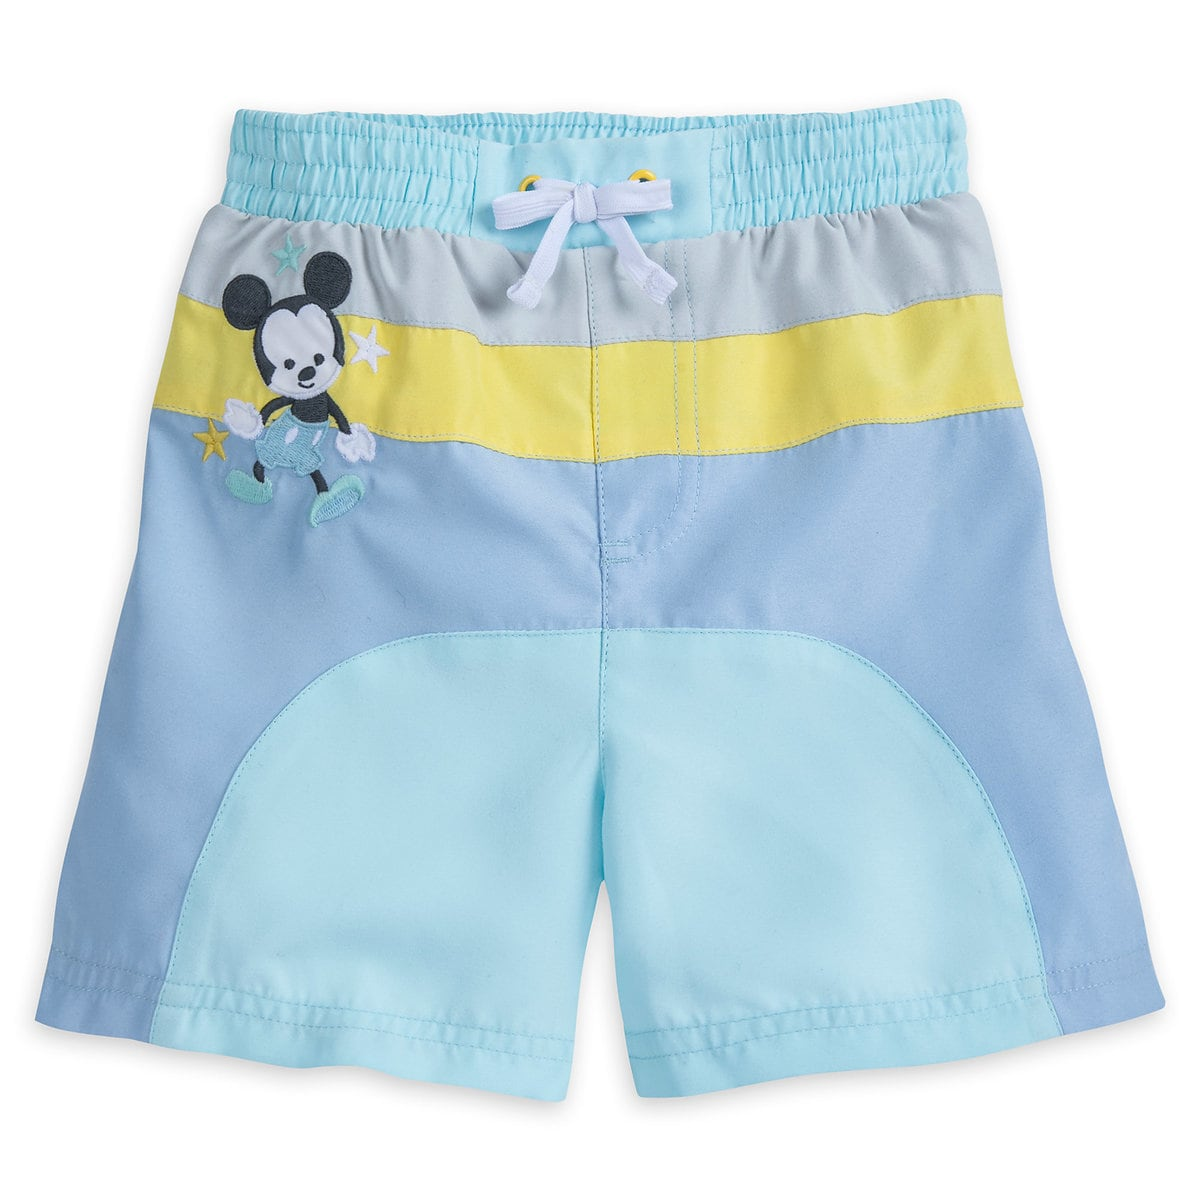 1f12647886 Product Image of Mickey Mouse Swim Trunks for Baby # 1